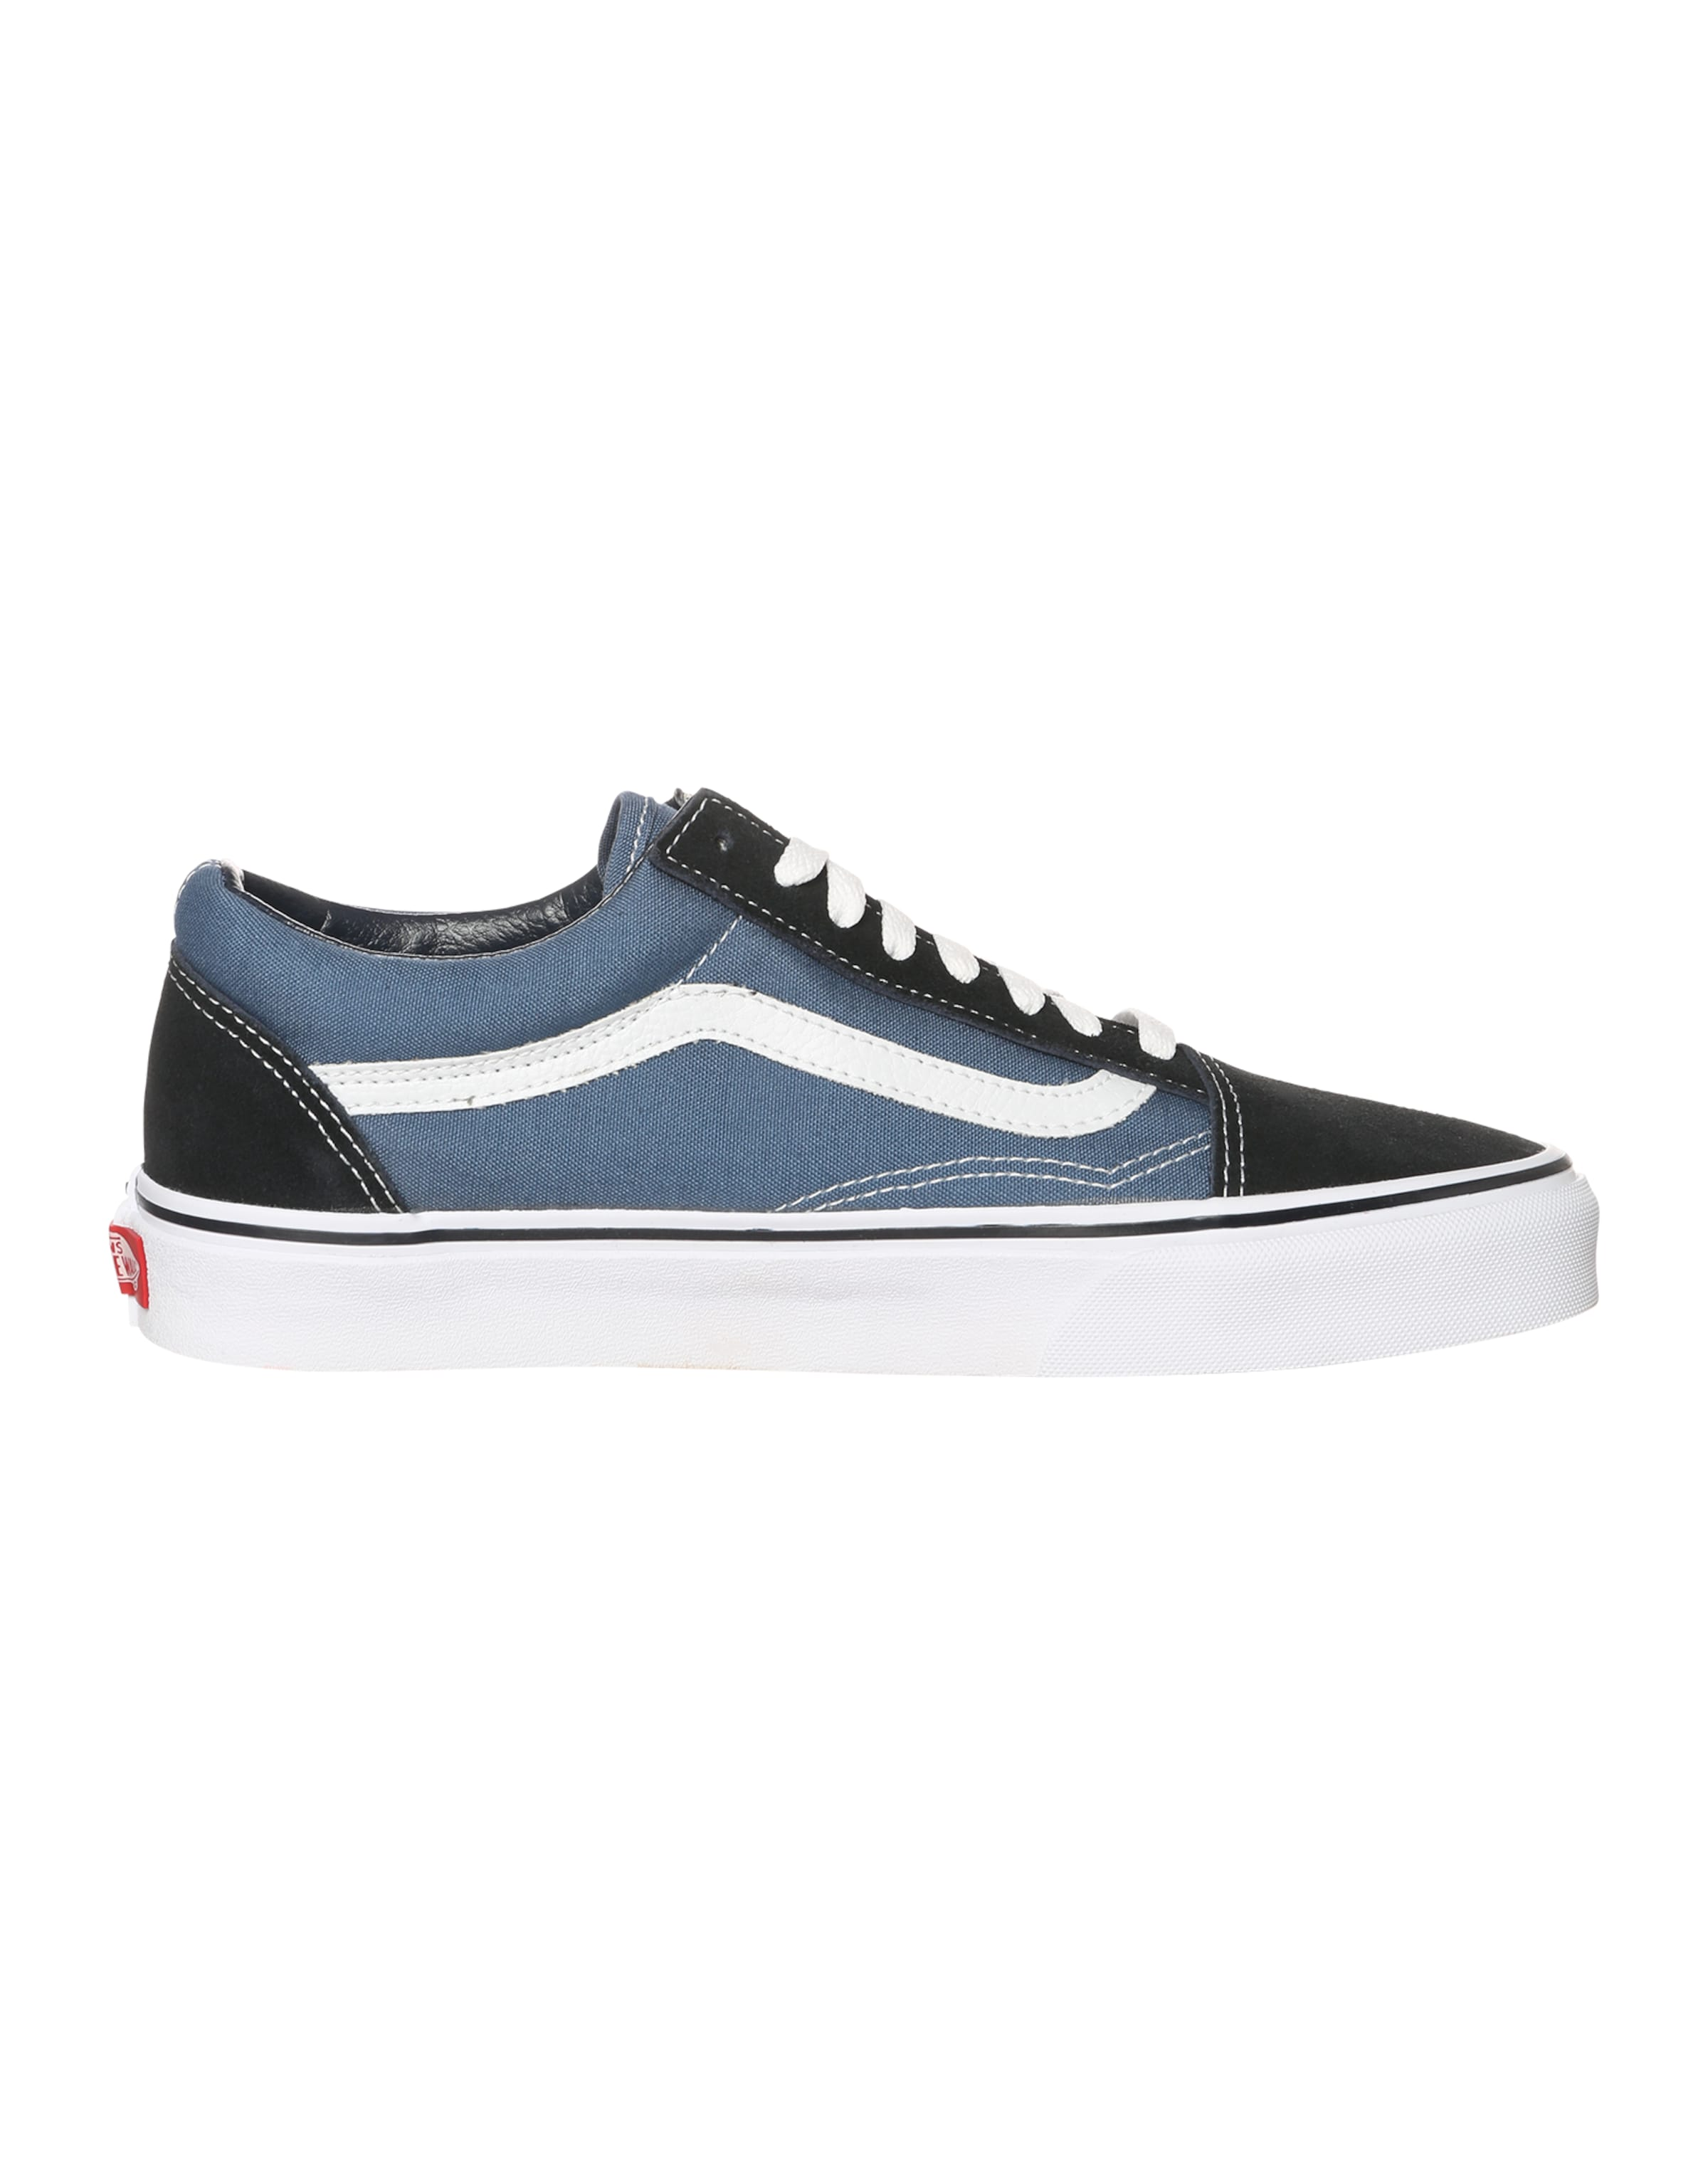 Baskets Blanc Skool' En 'old Vans MarineNoir Basses Bleu KclF1J